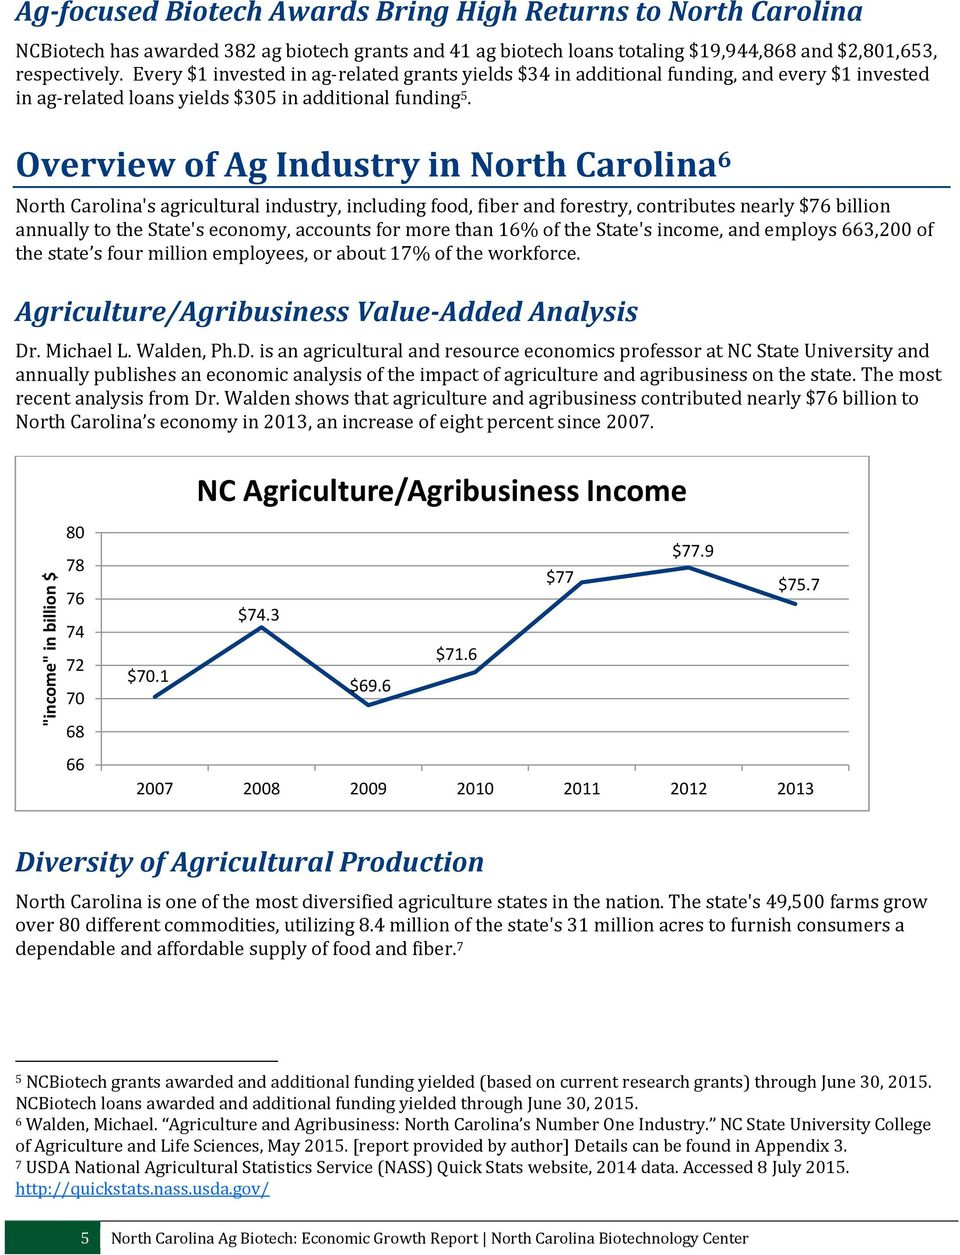 Overview of Ag Industry in North Carolina 6 North Carolina's agricultural industry, including food, fiber and forestry, contributes nearly $76 billion annually to the State's economy, accounts for